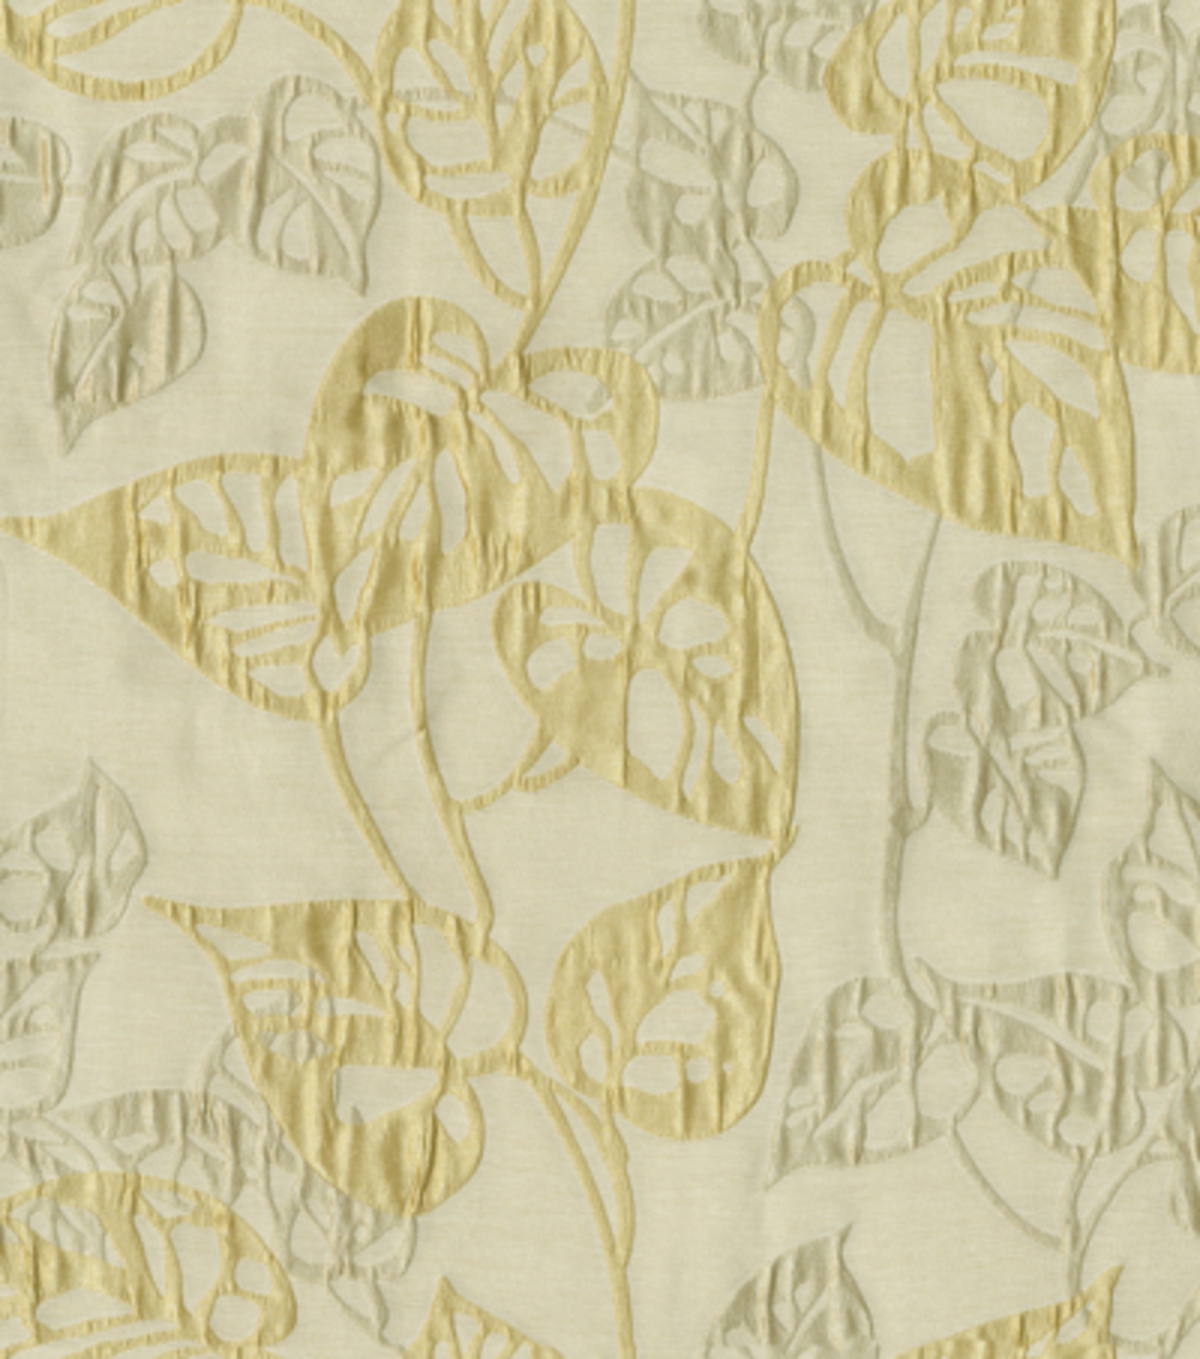 Home Decor 8\u0022x8\u0022 Fabric Swatch-Upholstery Fabric-Waverly Leaf Link/Shimmer